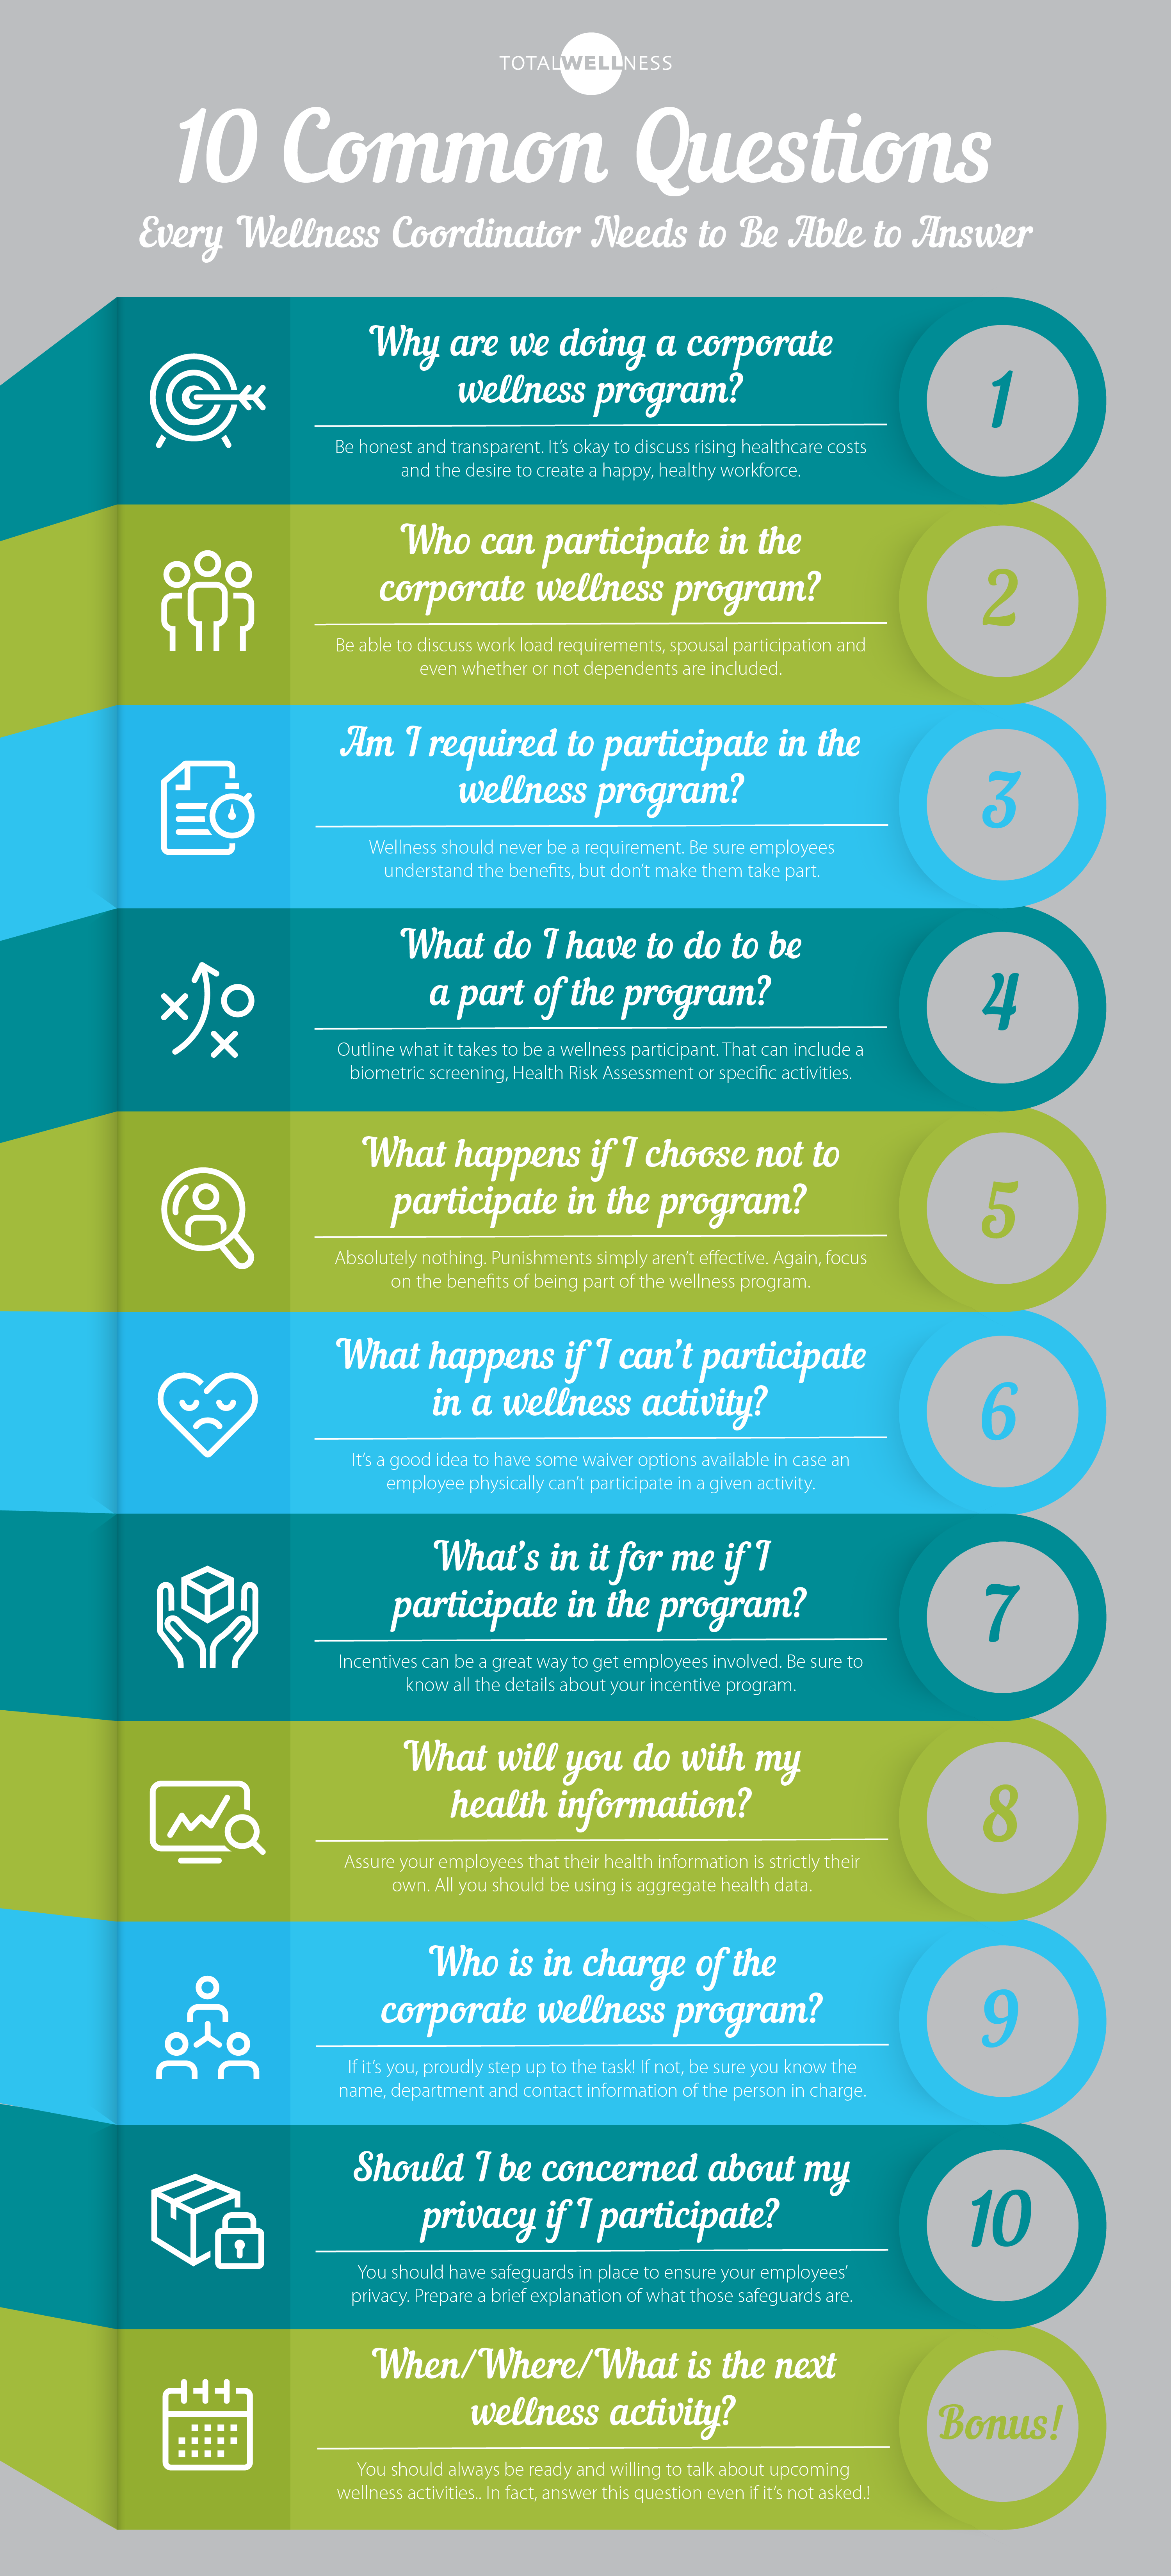 10 Questions Every Wellness Coordinator Should Be Able to Answer [Infographic]